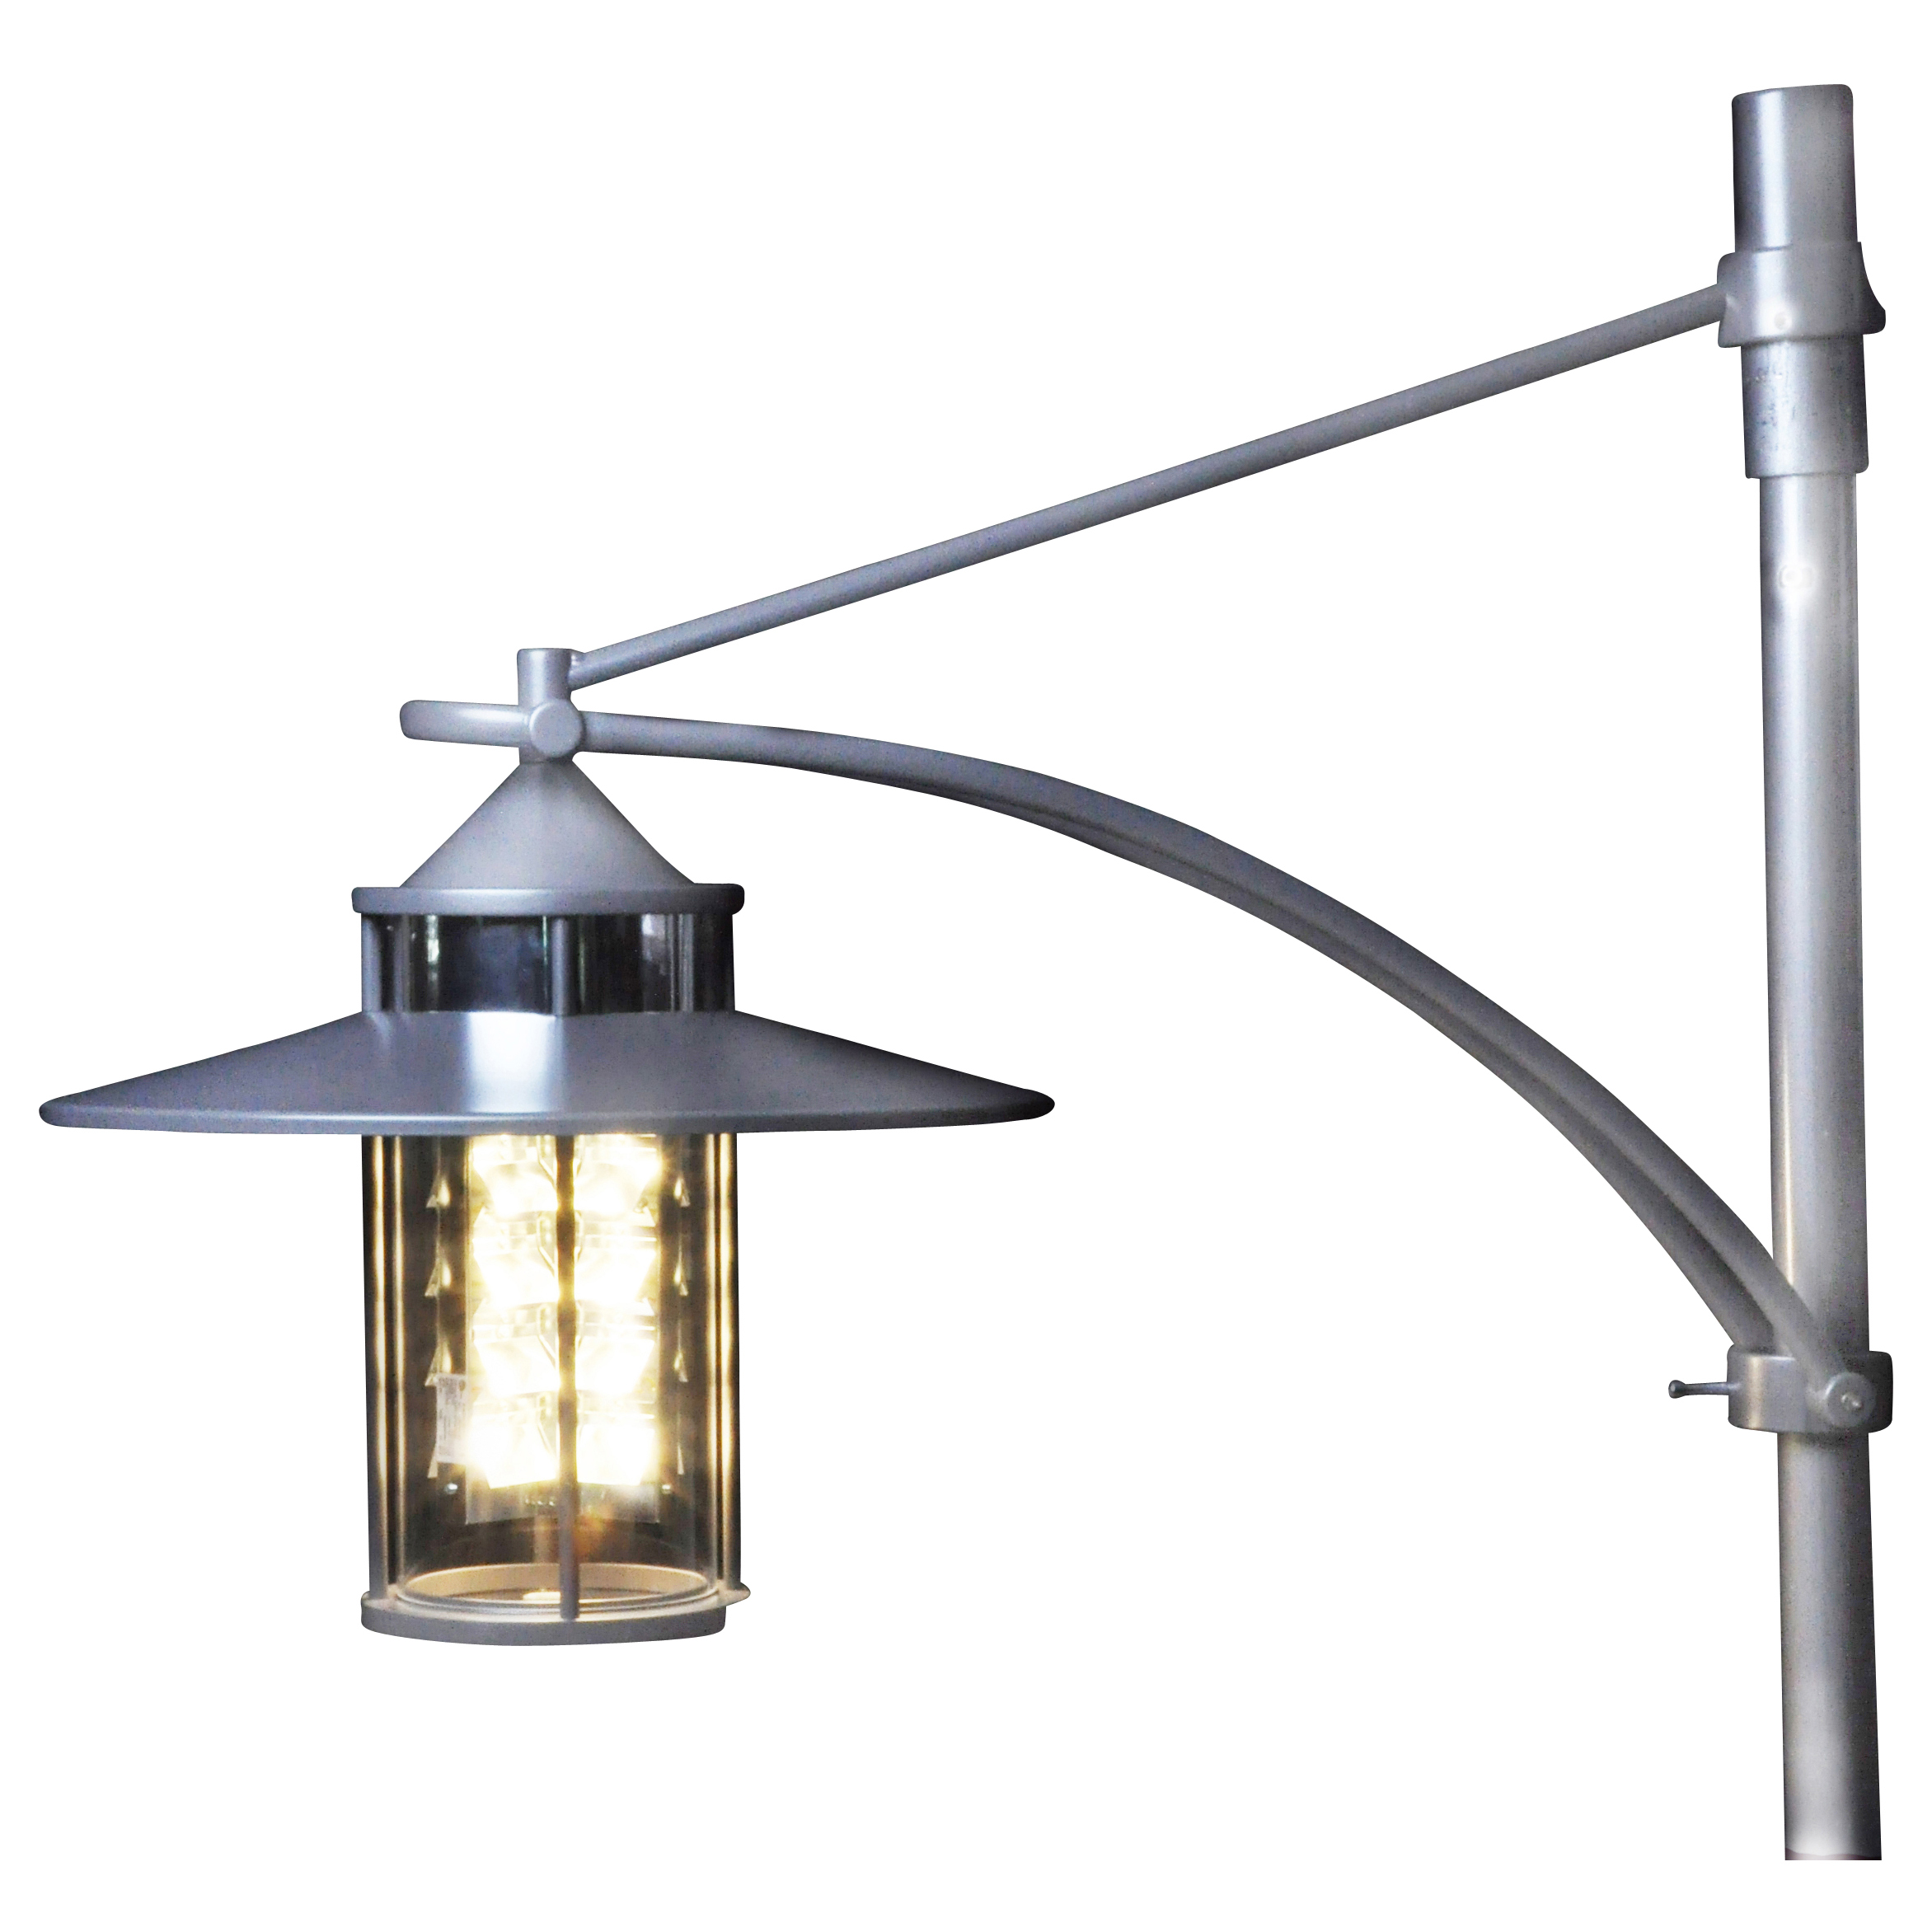 LED Cylinder Luminaire as Pendant Luminaire with Skylight